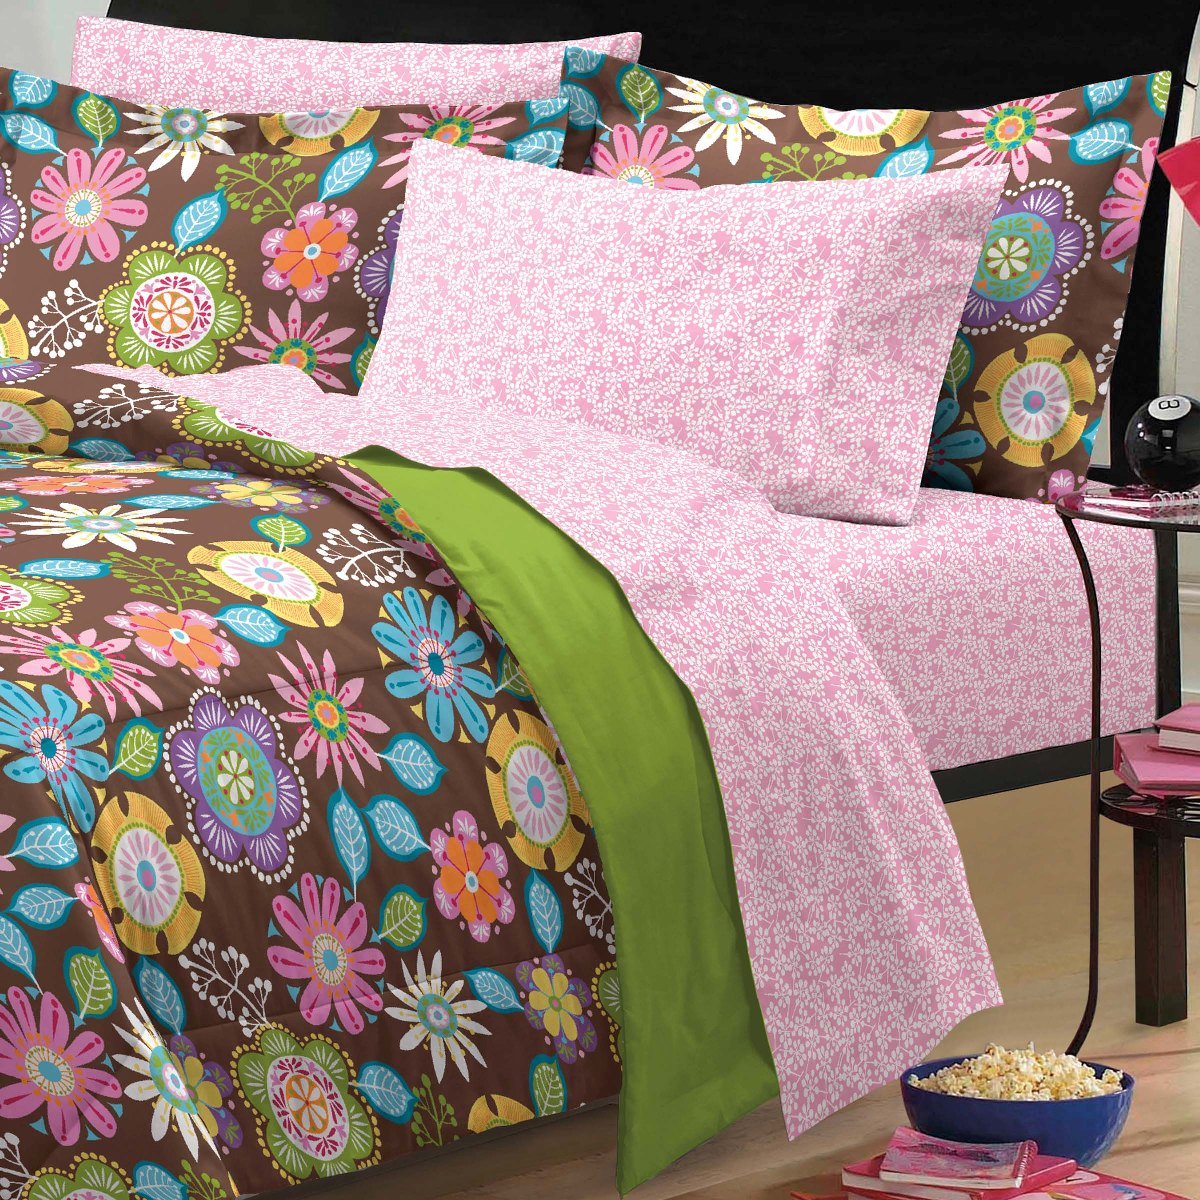 new boho garden teen girls bedding comforter sheet set twin twin xl ebay. Black Bedroom Furniture Sets. Home Design Ideas